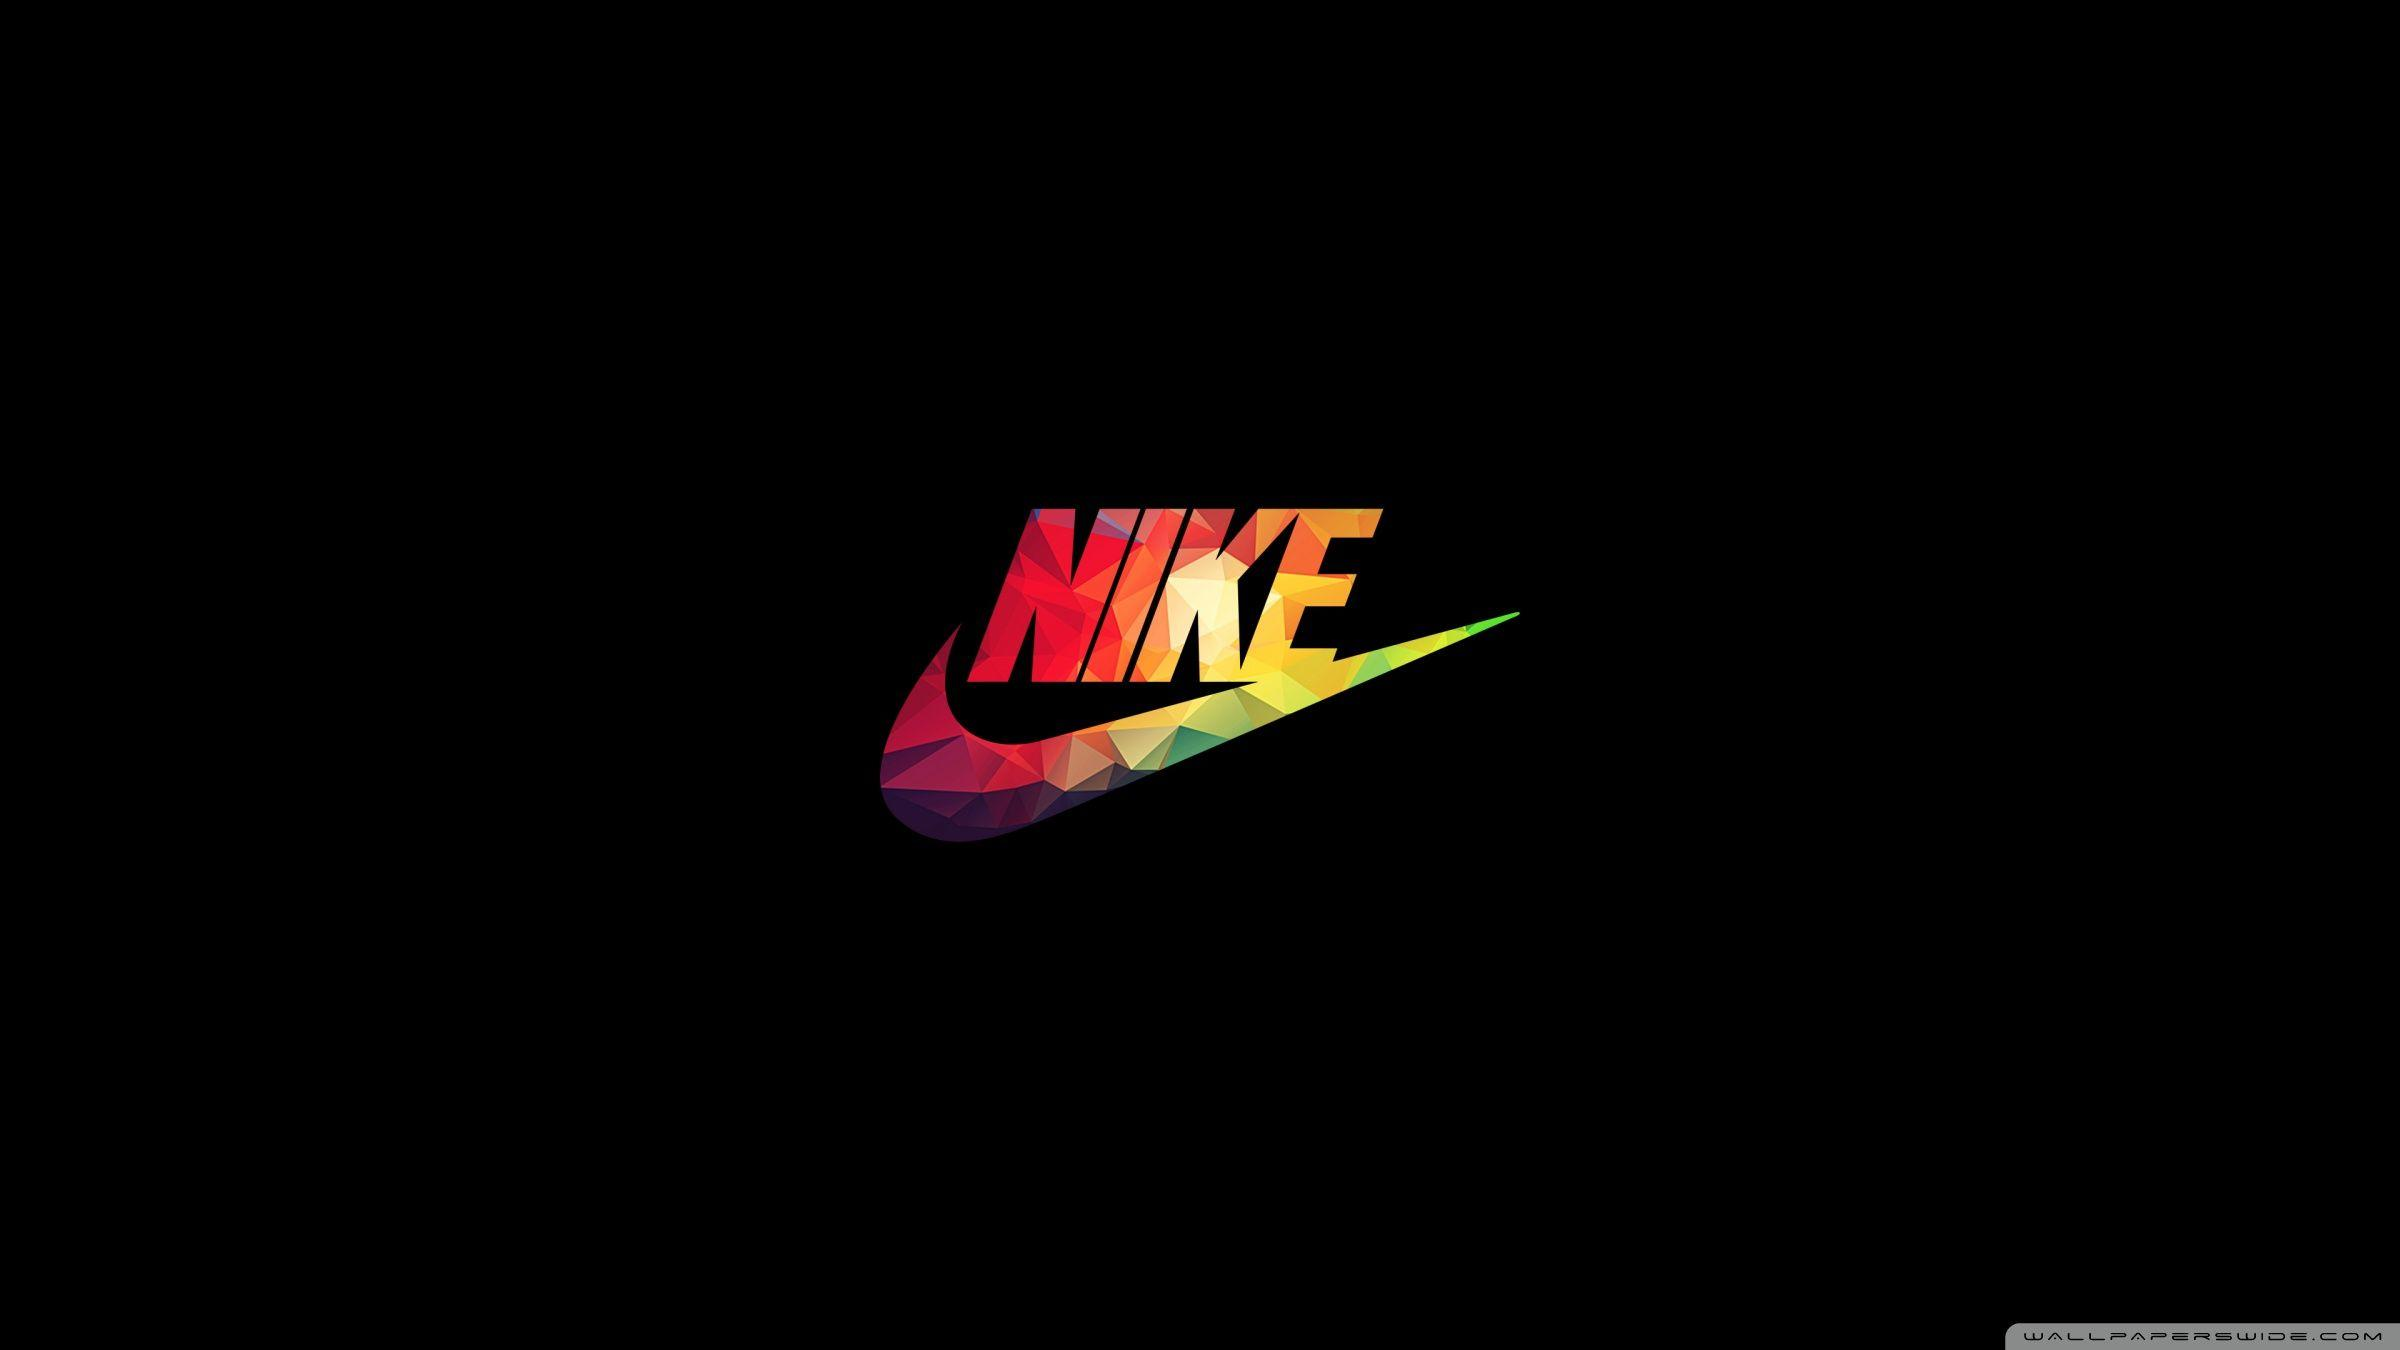 Nike Wallpapers Hd 1080p Wallpaper Cave